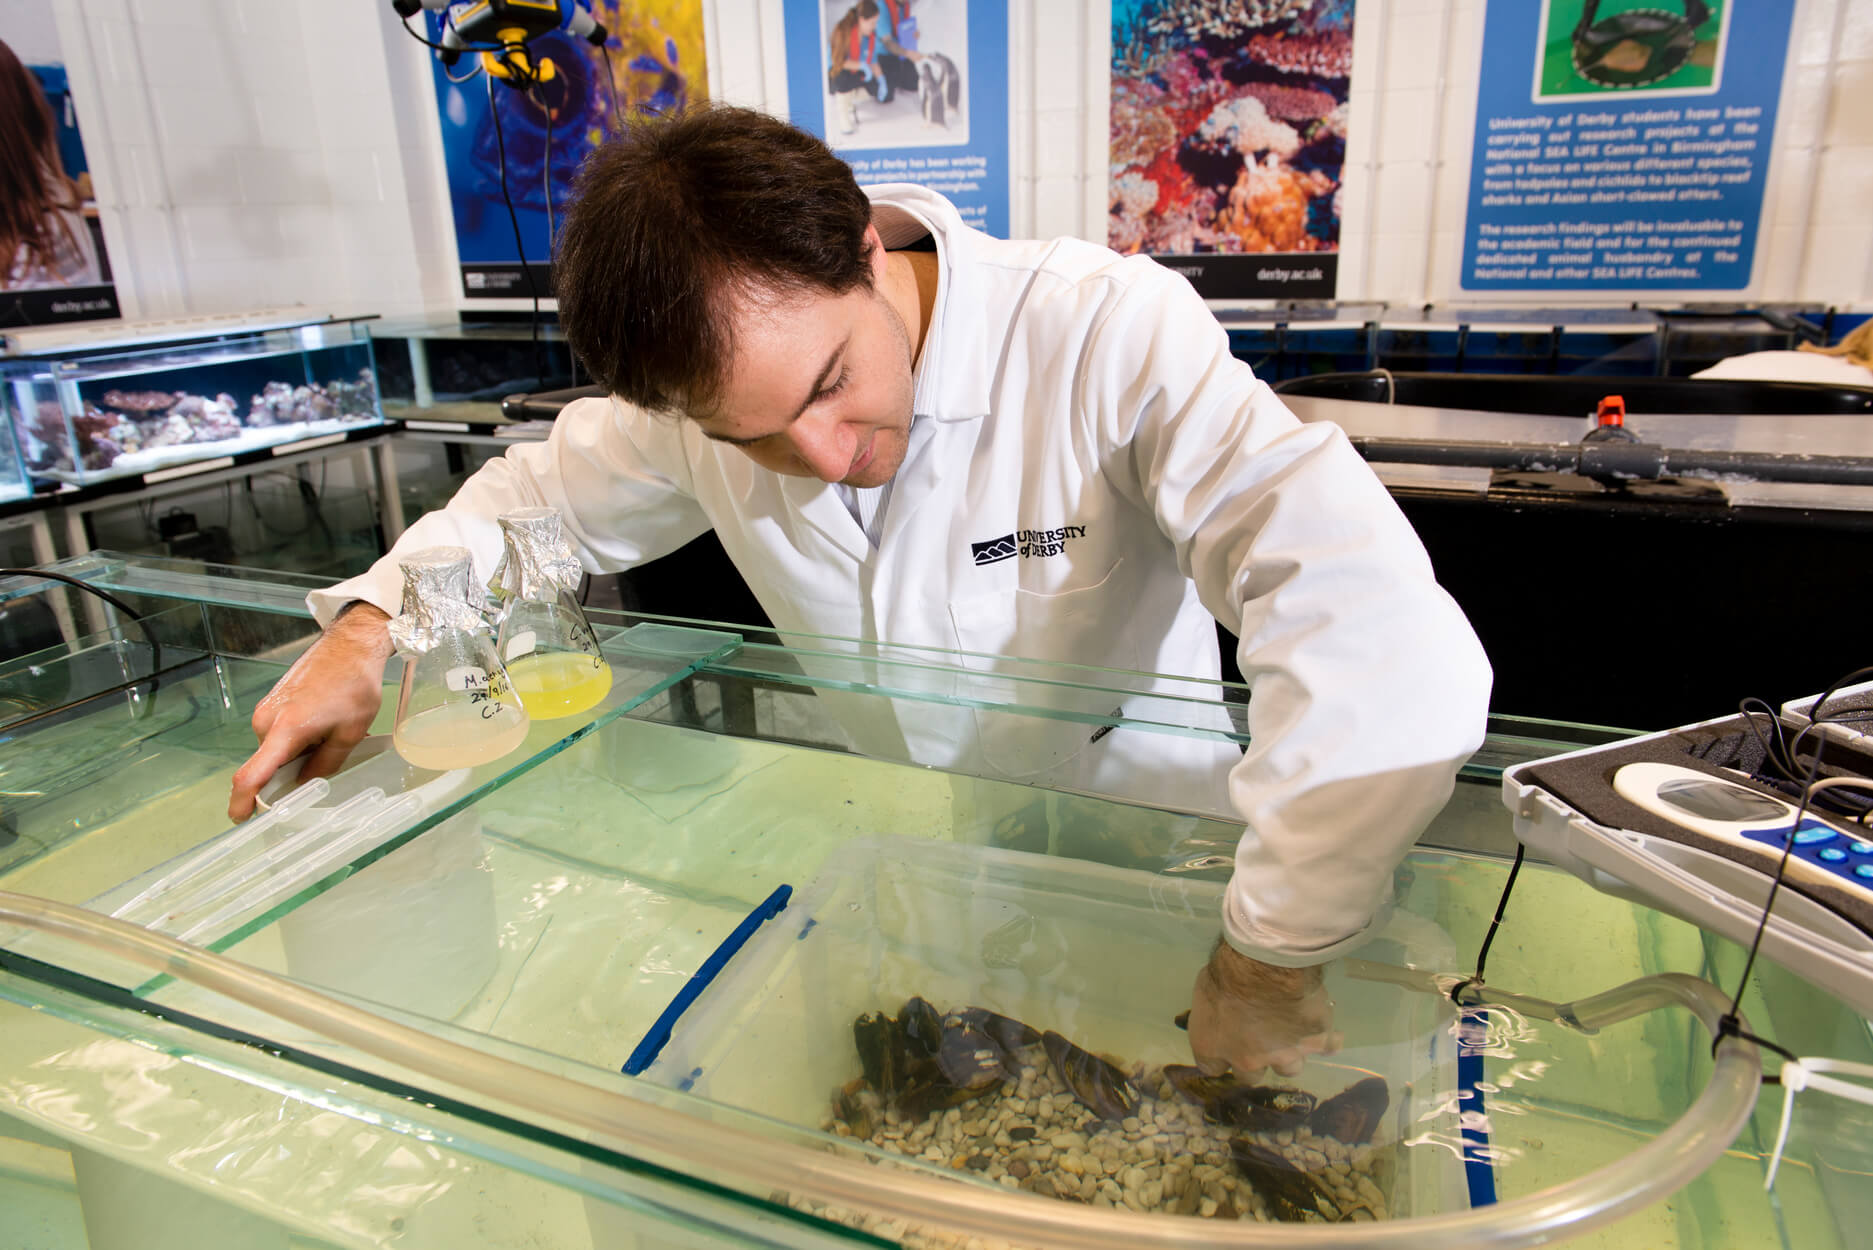 Researcher studying mussels in tank